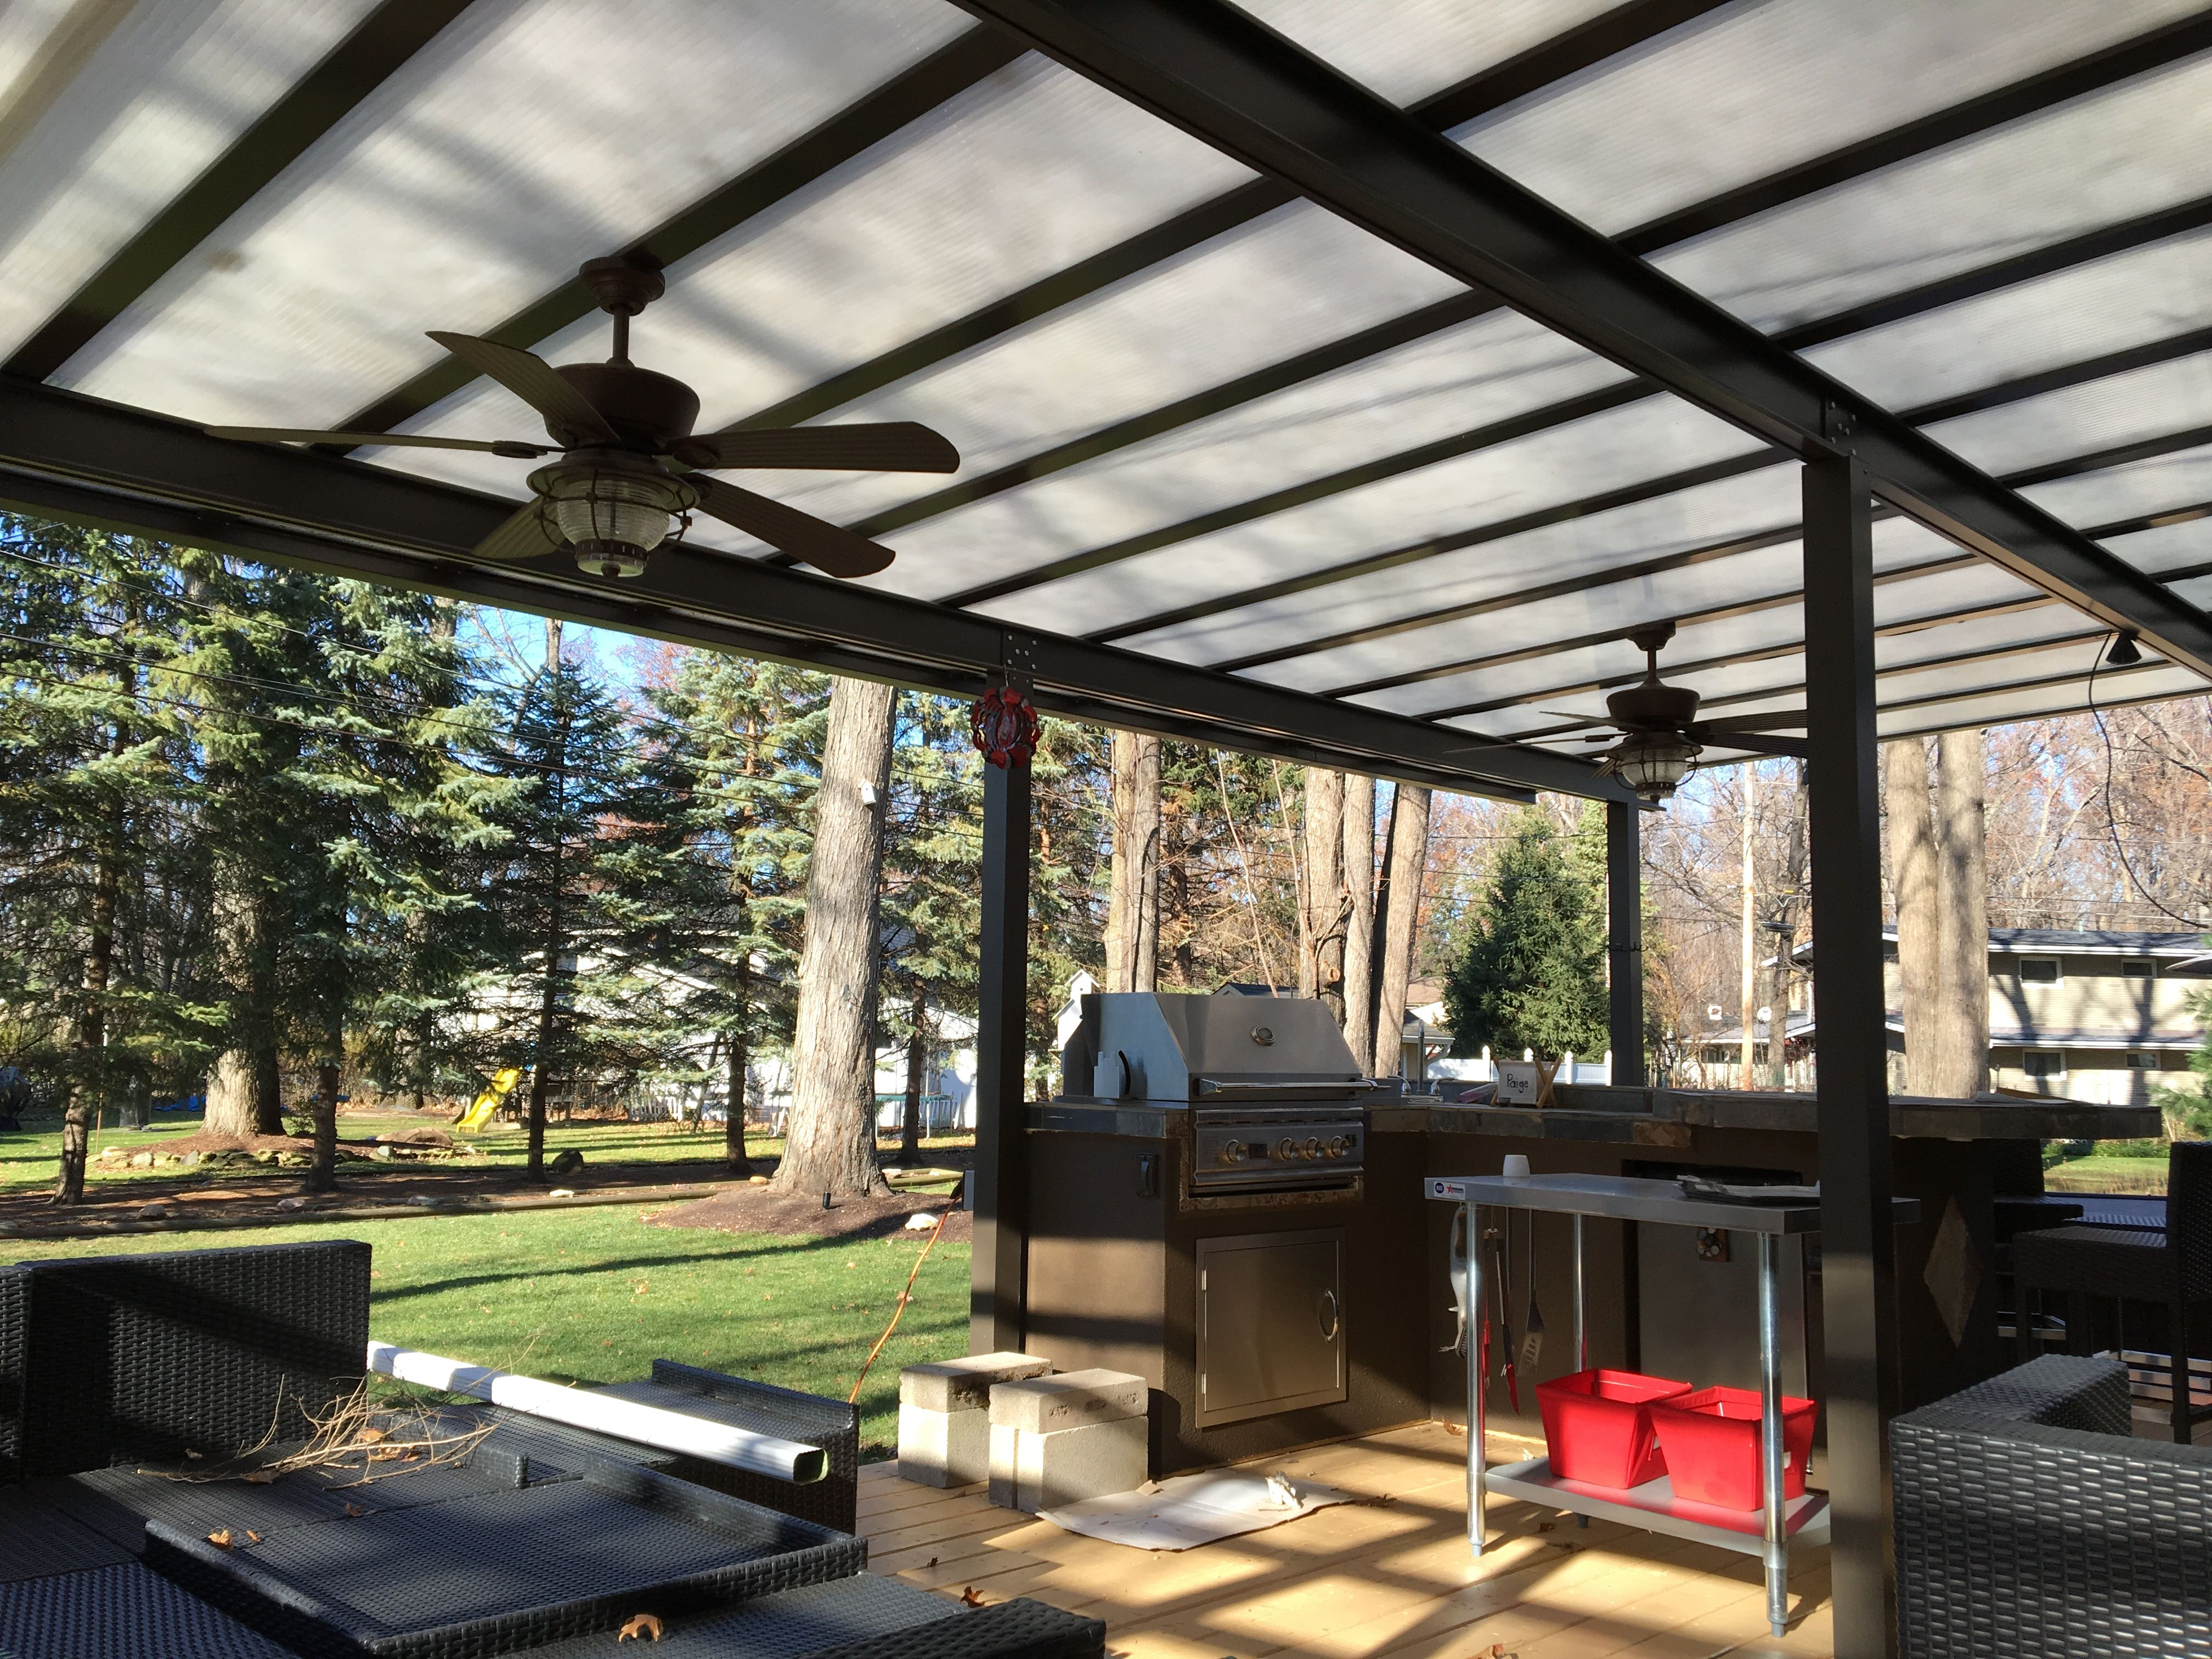 Pin By Susan Tuttle On Outdoor Kitchen And Fire Place Pergola Covered Decks Patio Deck